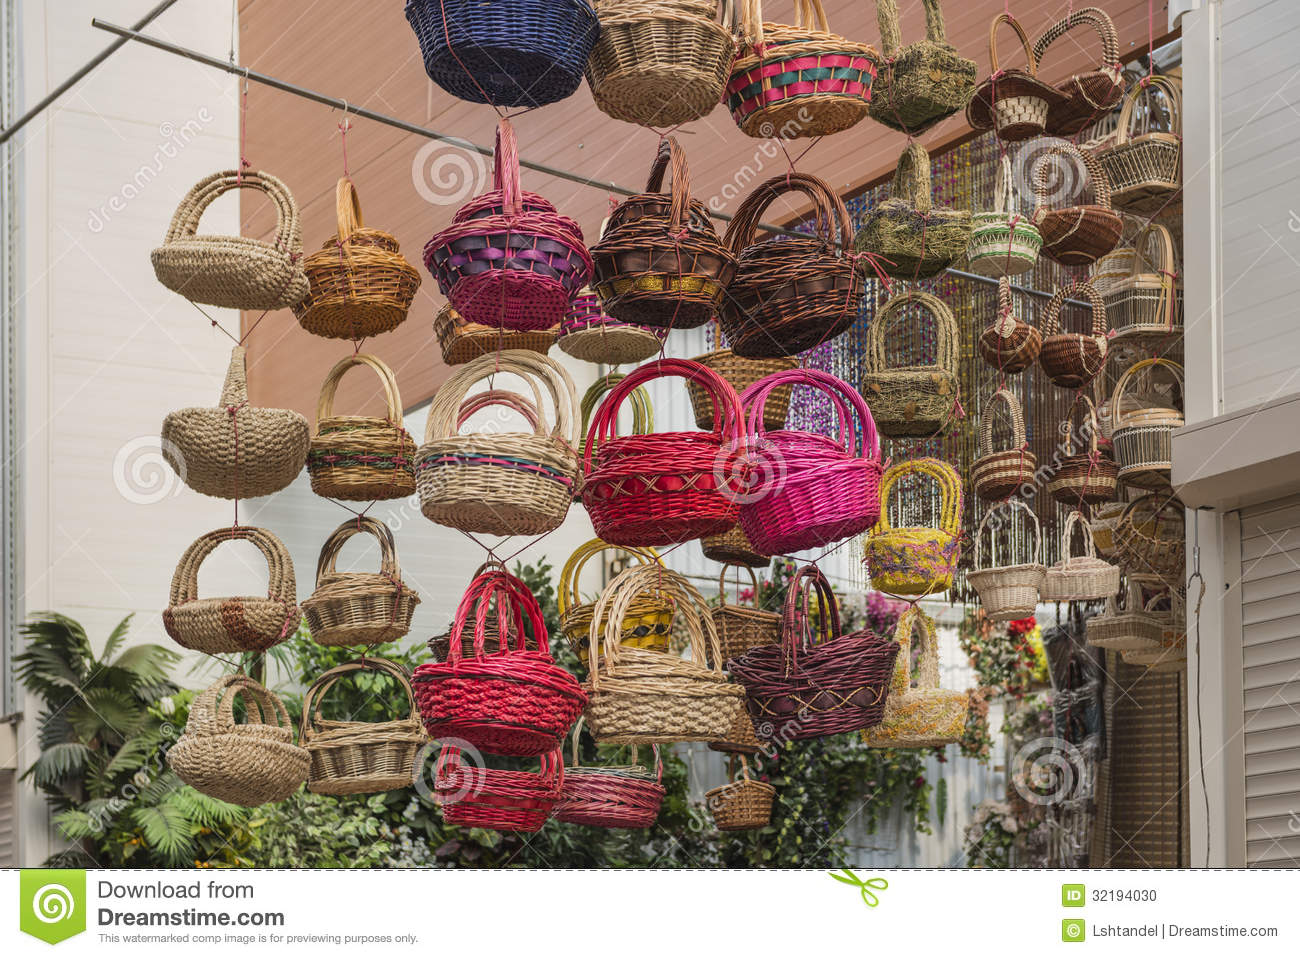 Colorful baskets at a flower shop hanging from the